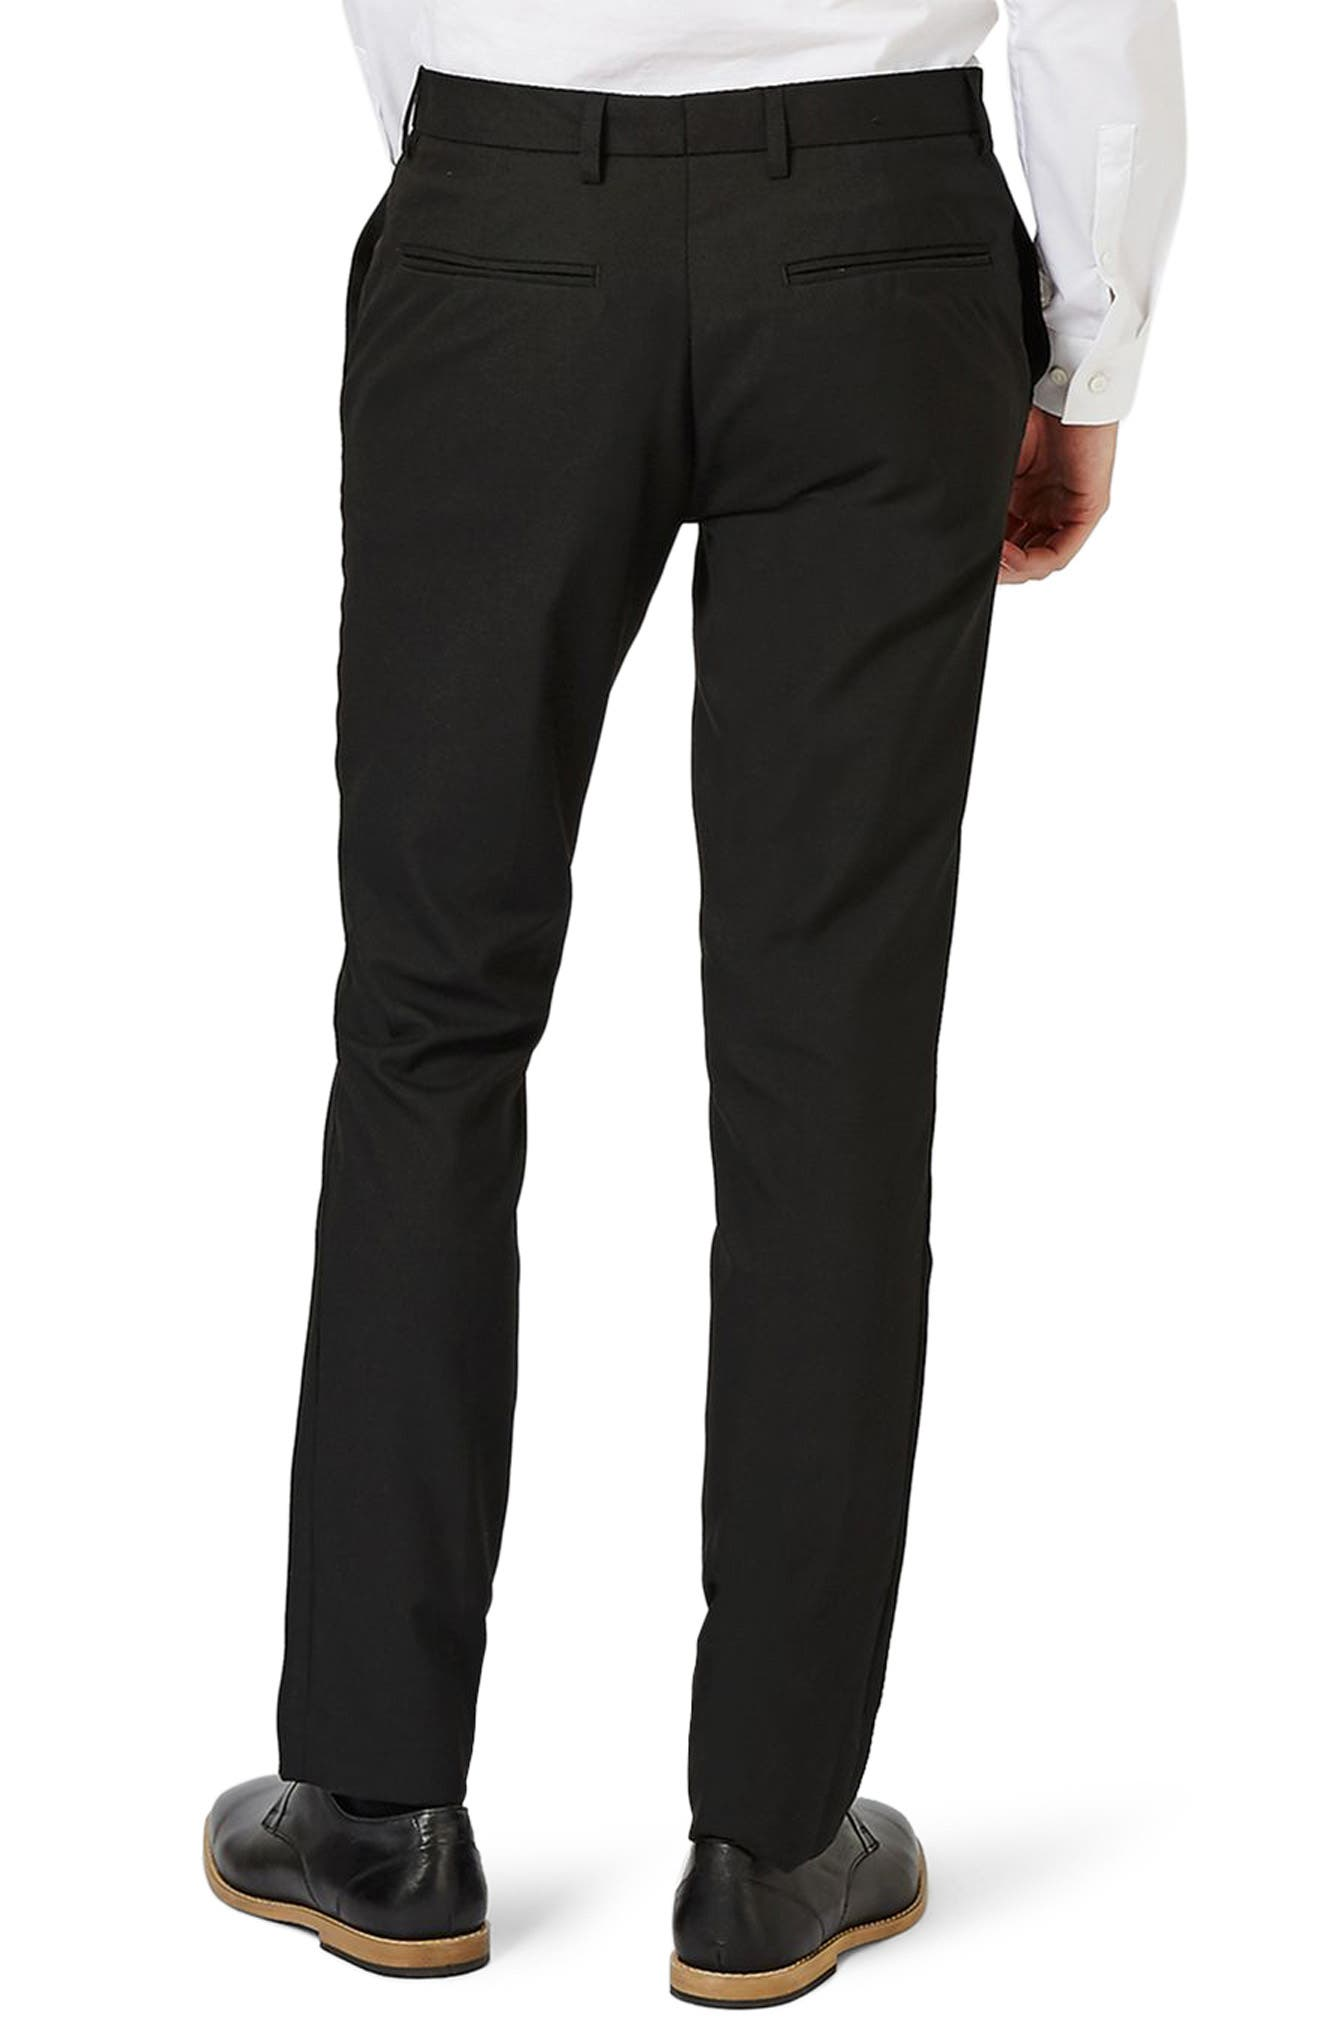 Skinny Fit Pants,                             Alternate thumbnail 2, color,                             Black